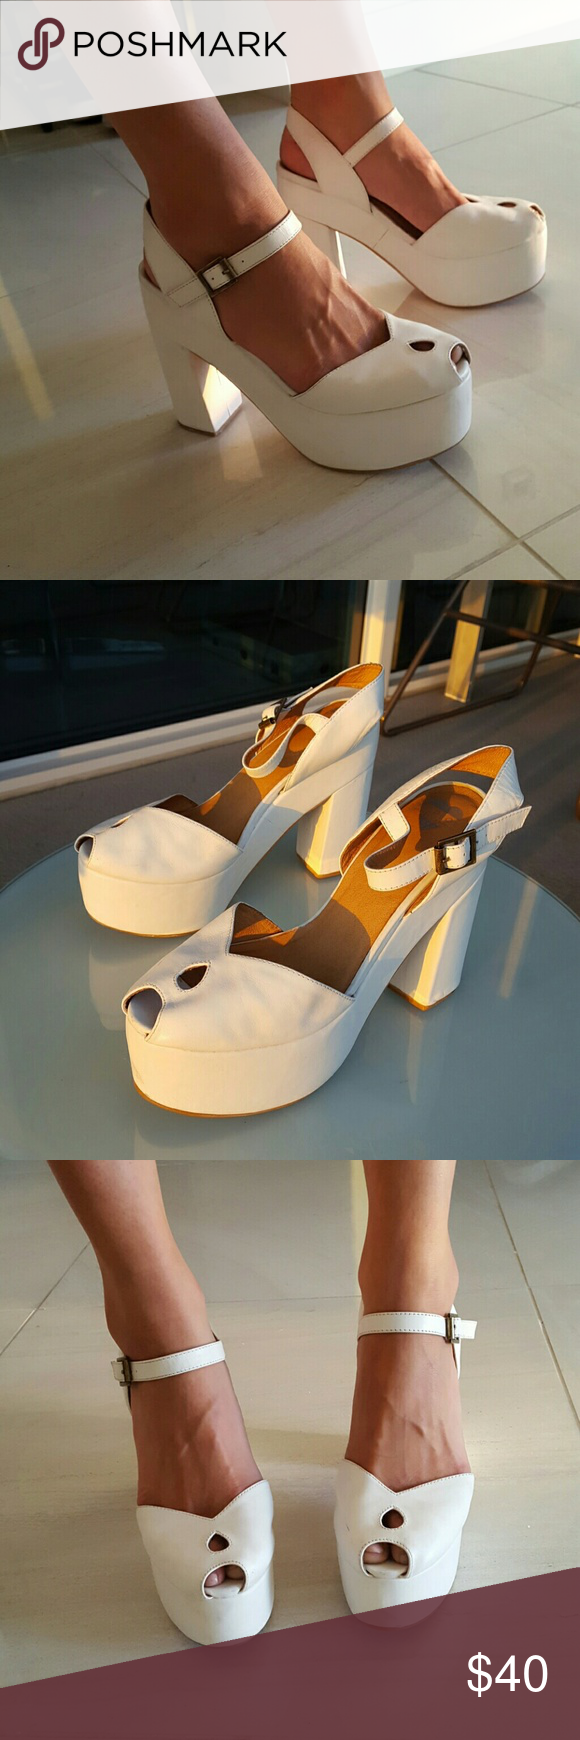 Jeffrey Campbell x Wildfox White Platforms, size 8 Perfect collaboration between Jeffrey Campbell and Wildfox. Adorable white platforms featuring a peep toe and block heel. Women's US size 8. Jeffrey Campbell Shoes Platforms